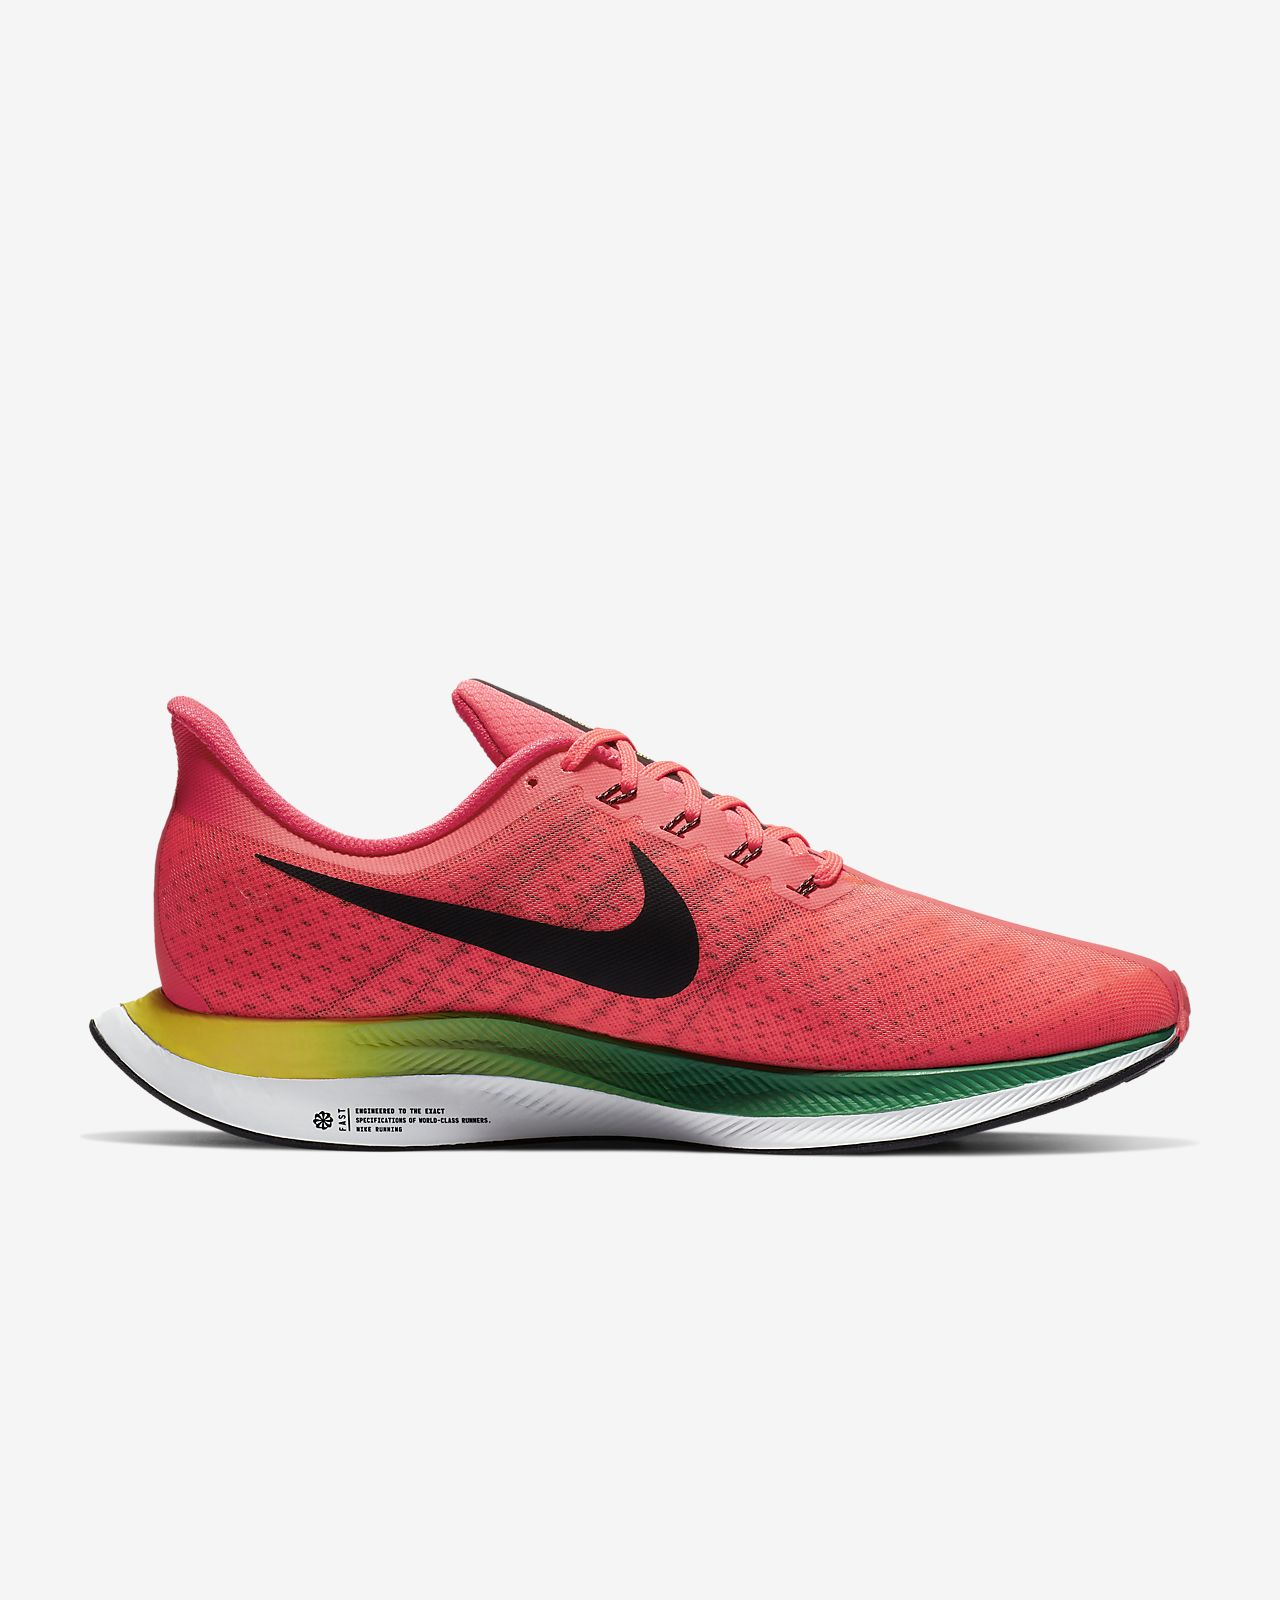 9d5fd7079a59 Nike Zoom Pegasus Turbo Men s Running Shoe. Nike.com